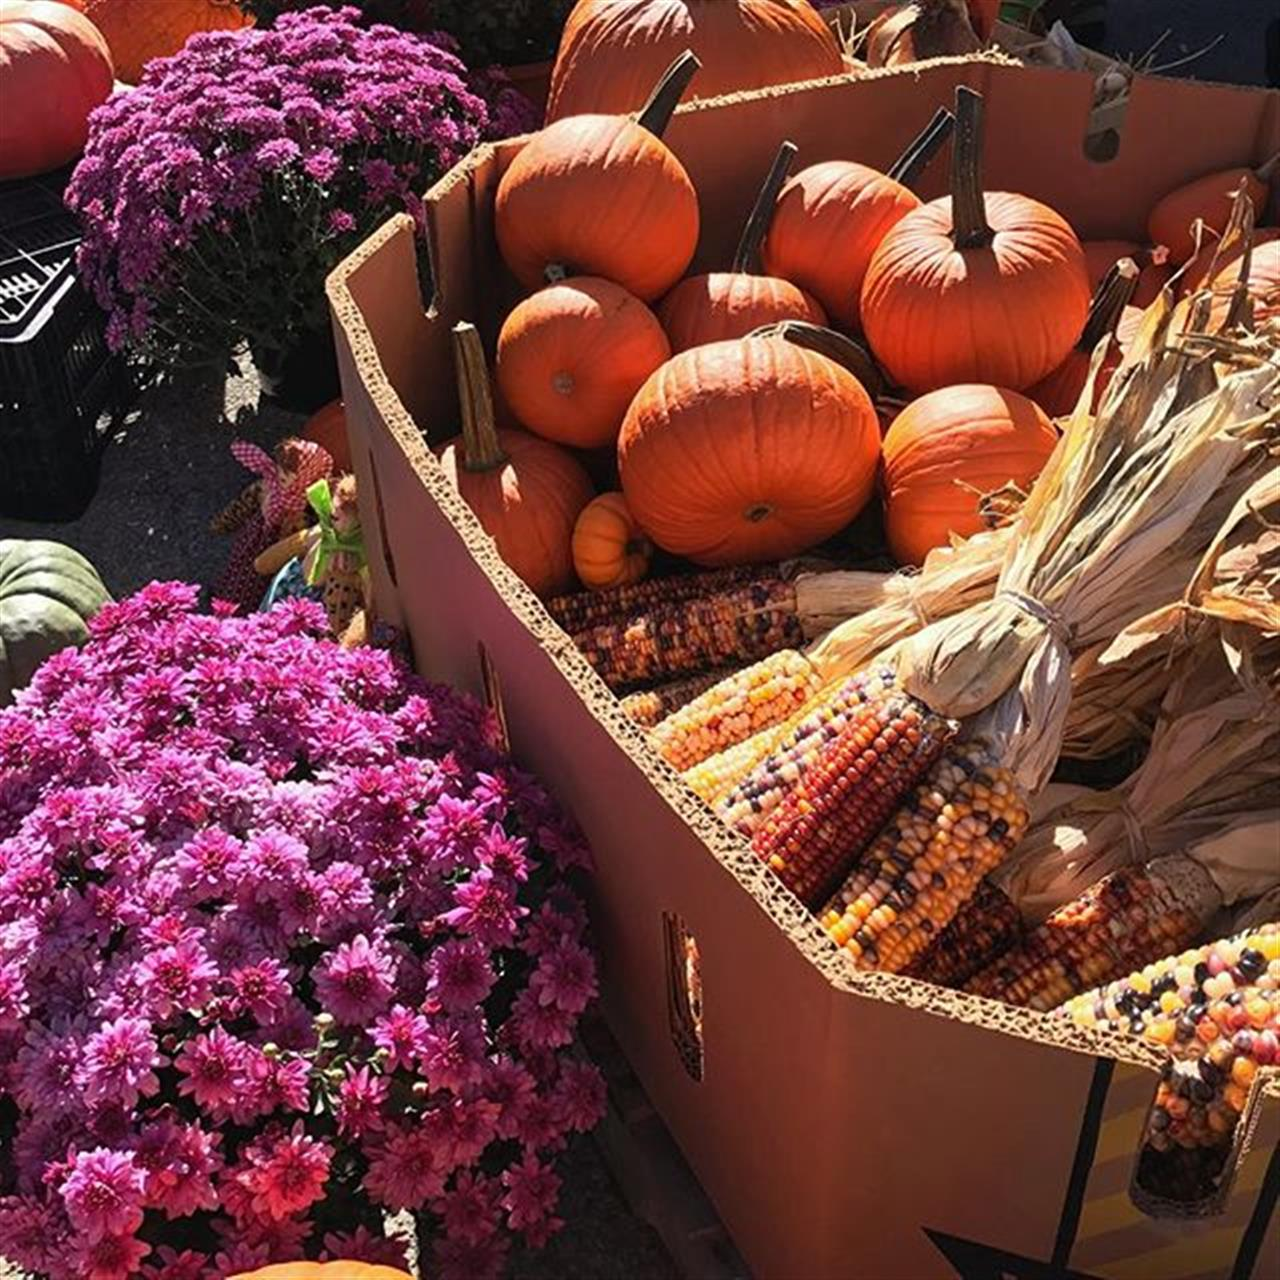 Fall Harvest Festival #fallharvest #fallharvestfestival #photography #photooftheday #chromatic #picoftheday #fall #farmersmarket #instagood #indiana #mobilephotography #mobile #iphonepic #art #fineart #fineartphotography #autumn #autumnharvest #leadingrelocal #carpentercares